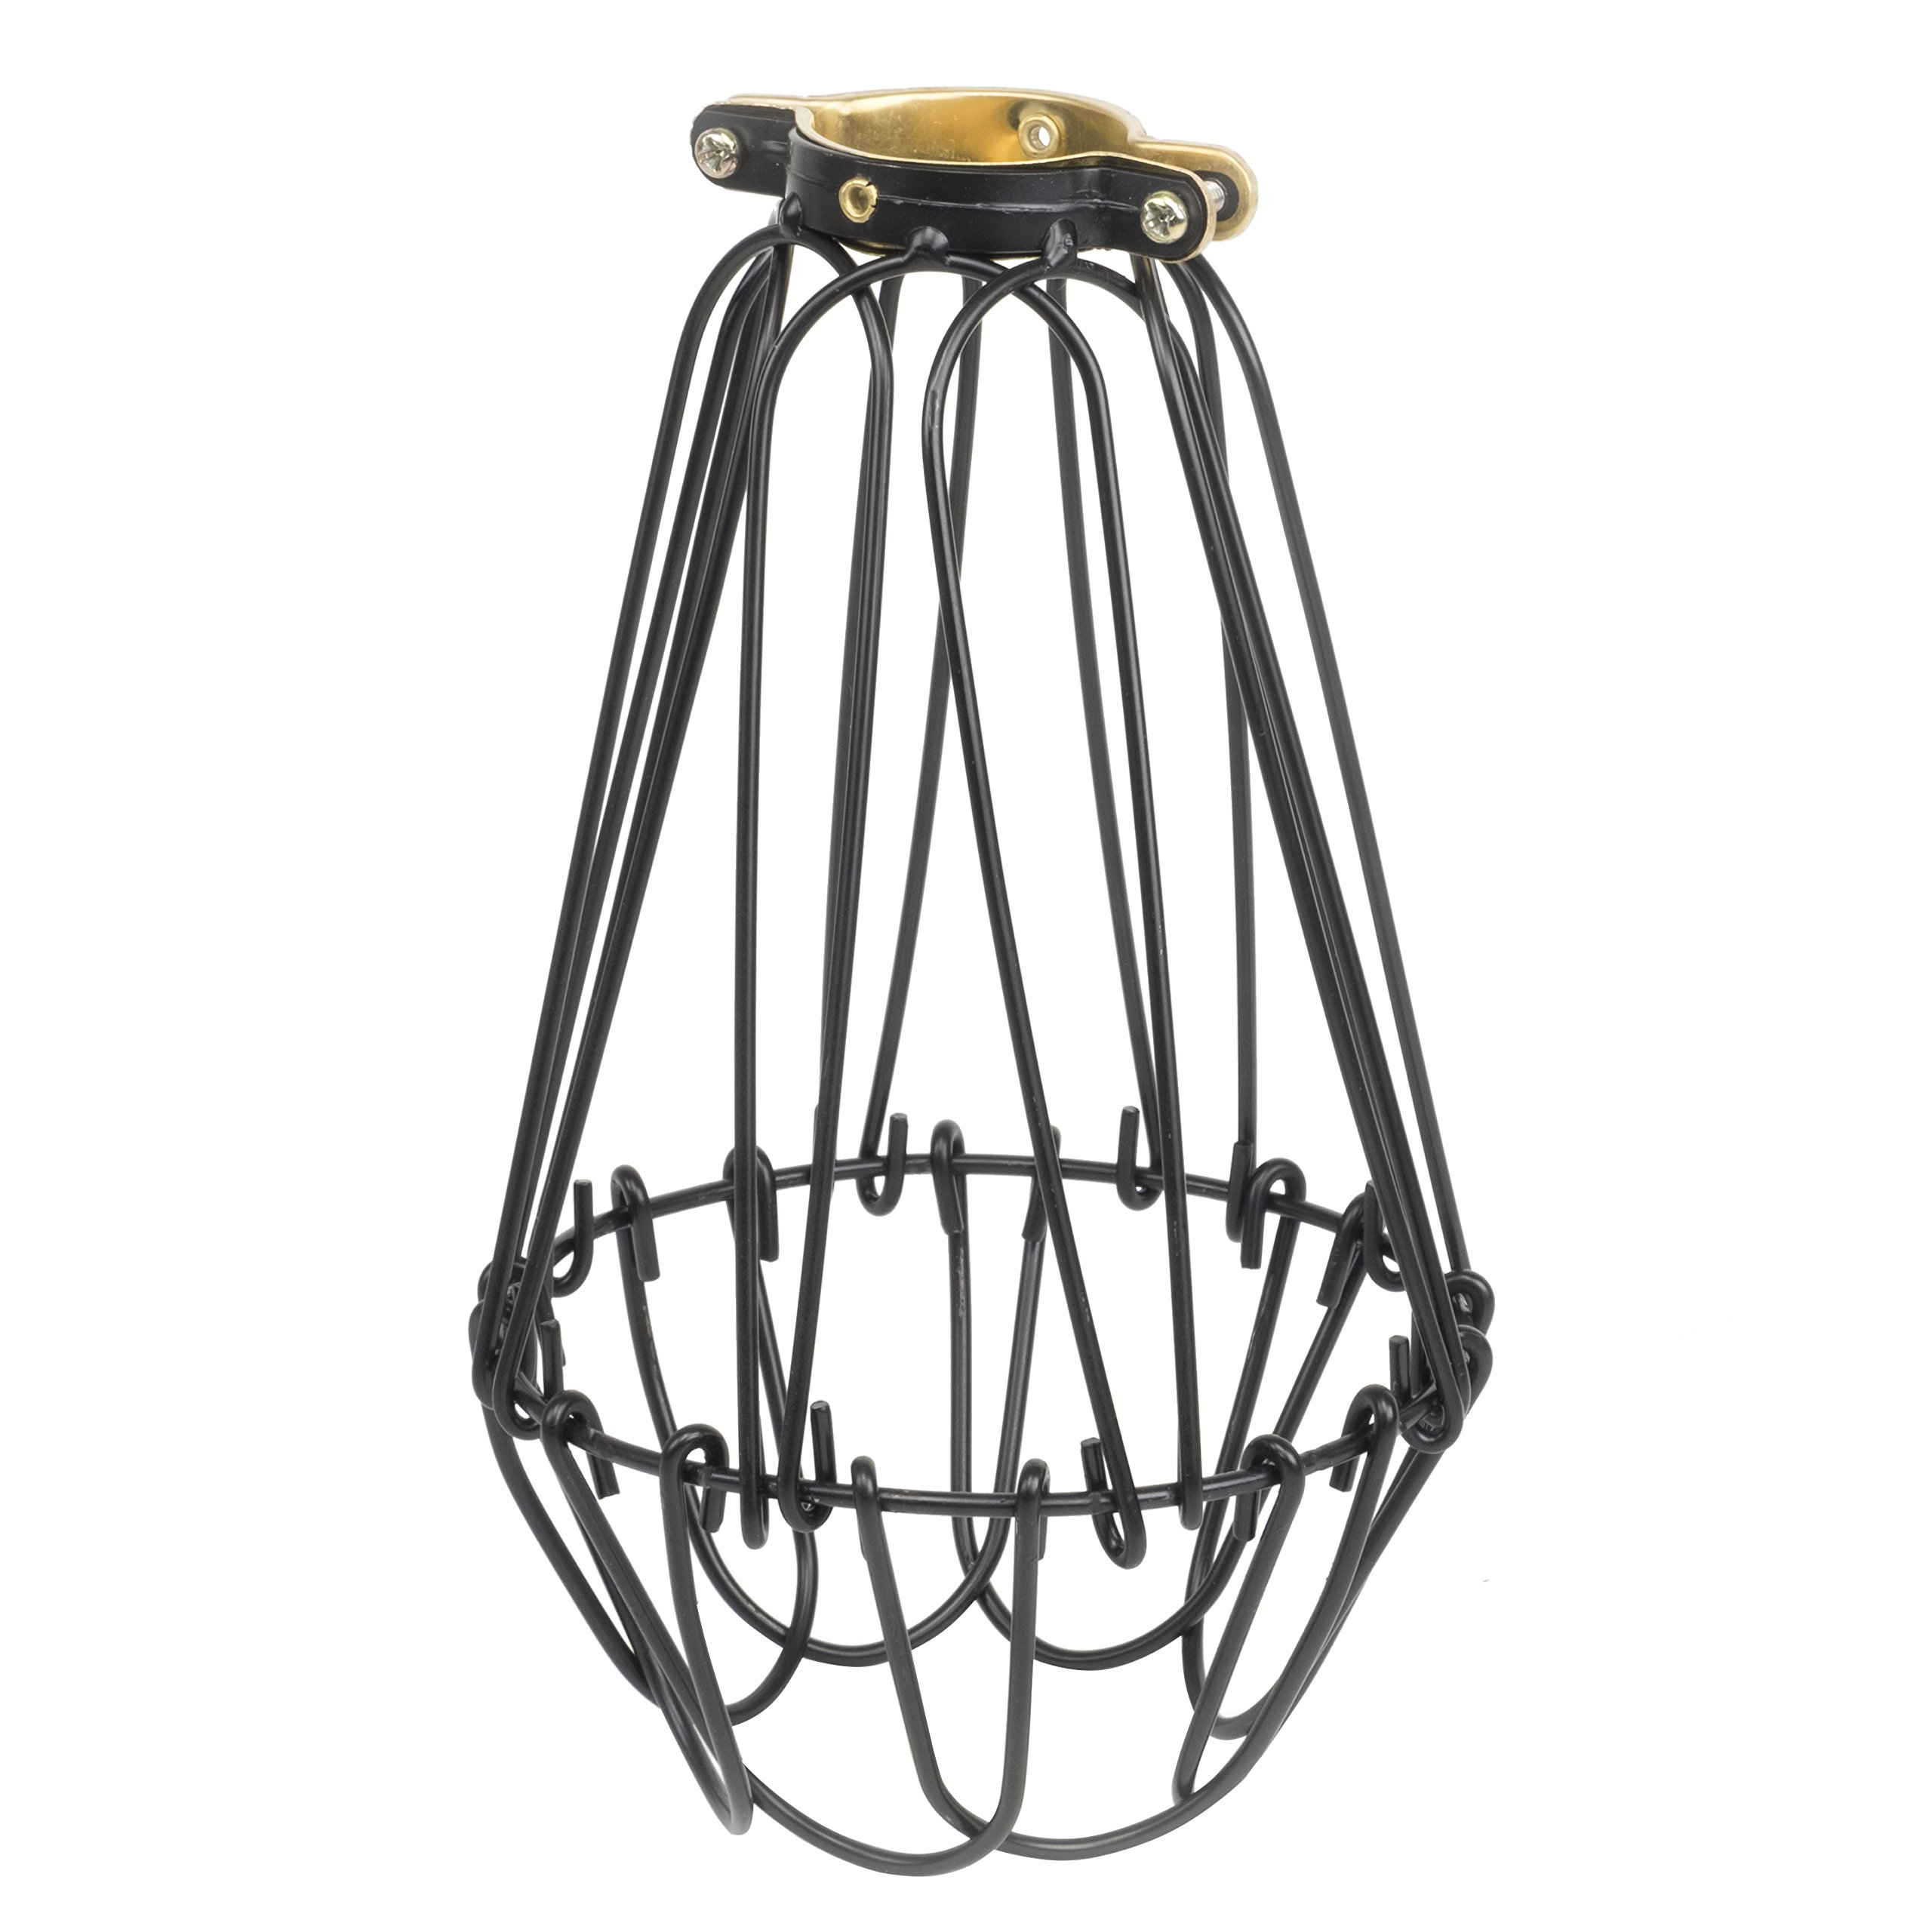 Cheap Cage Light Fixture, find Cage Light Fixture deals on line at ...